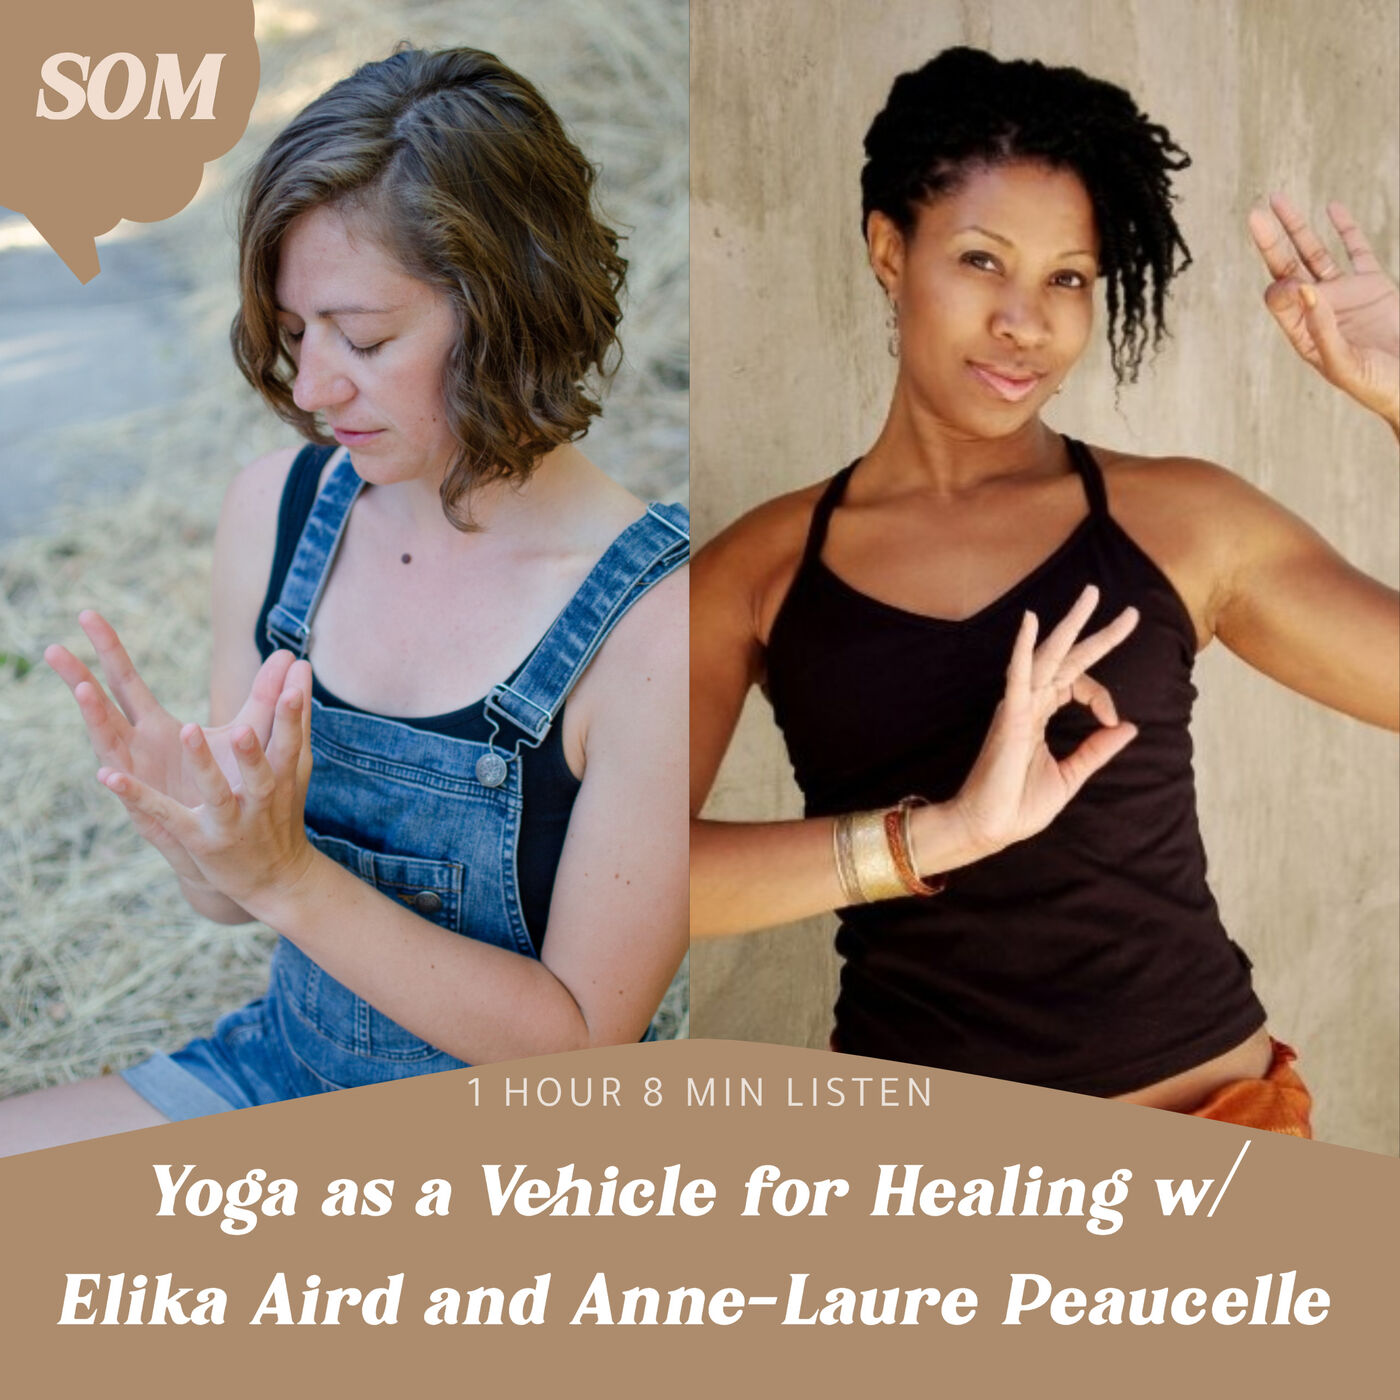 Yoga as a Vehicle for Healing w/ Elika Aird & Anne-Laure Peaucelle